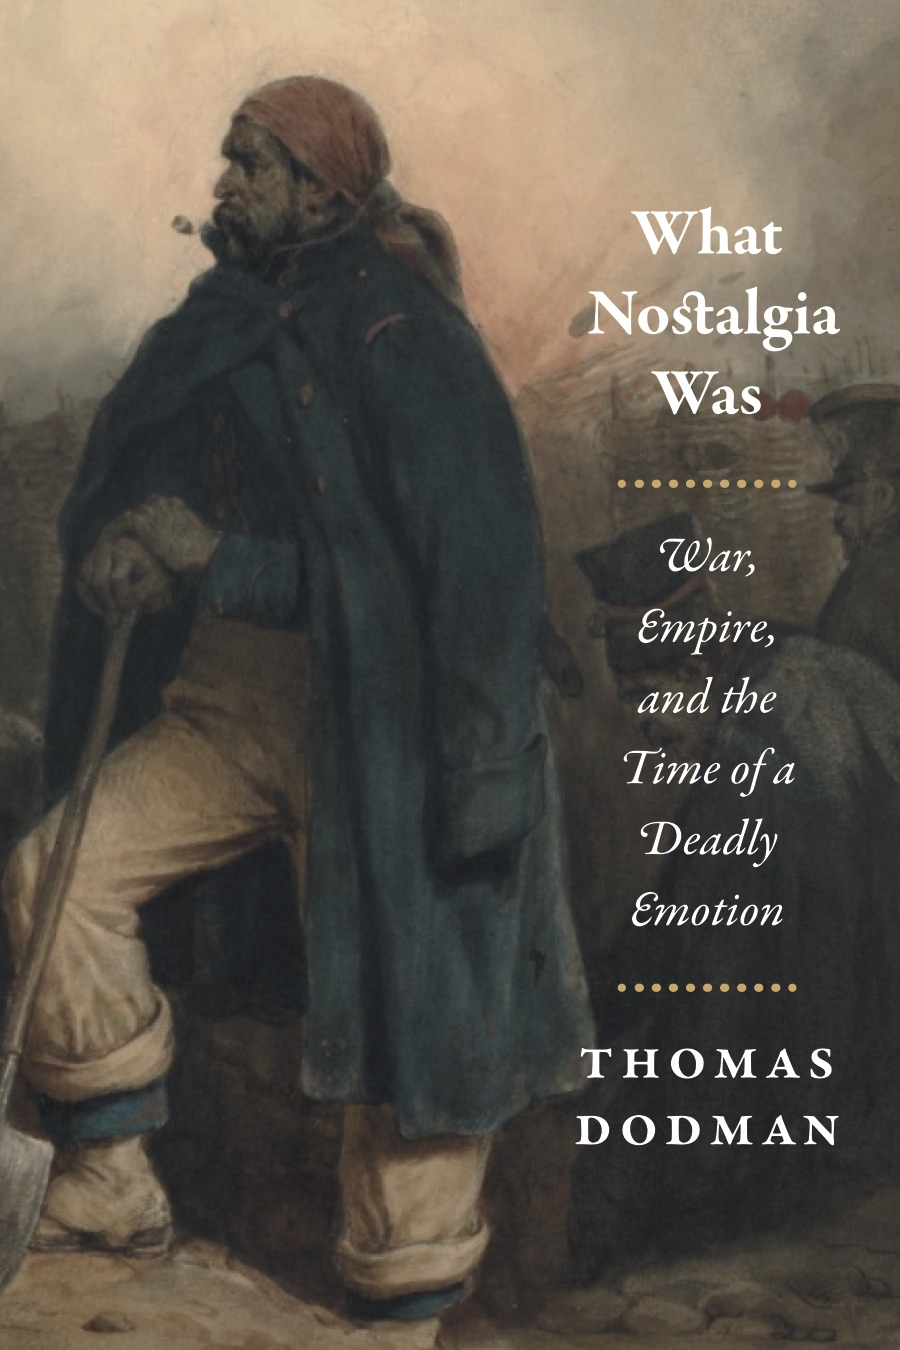 cover for What Nostalgia Was by Thomas Dodman